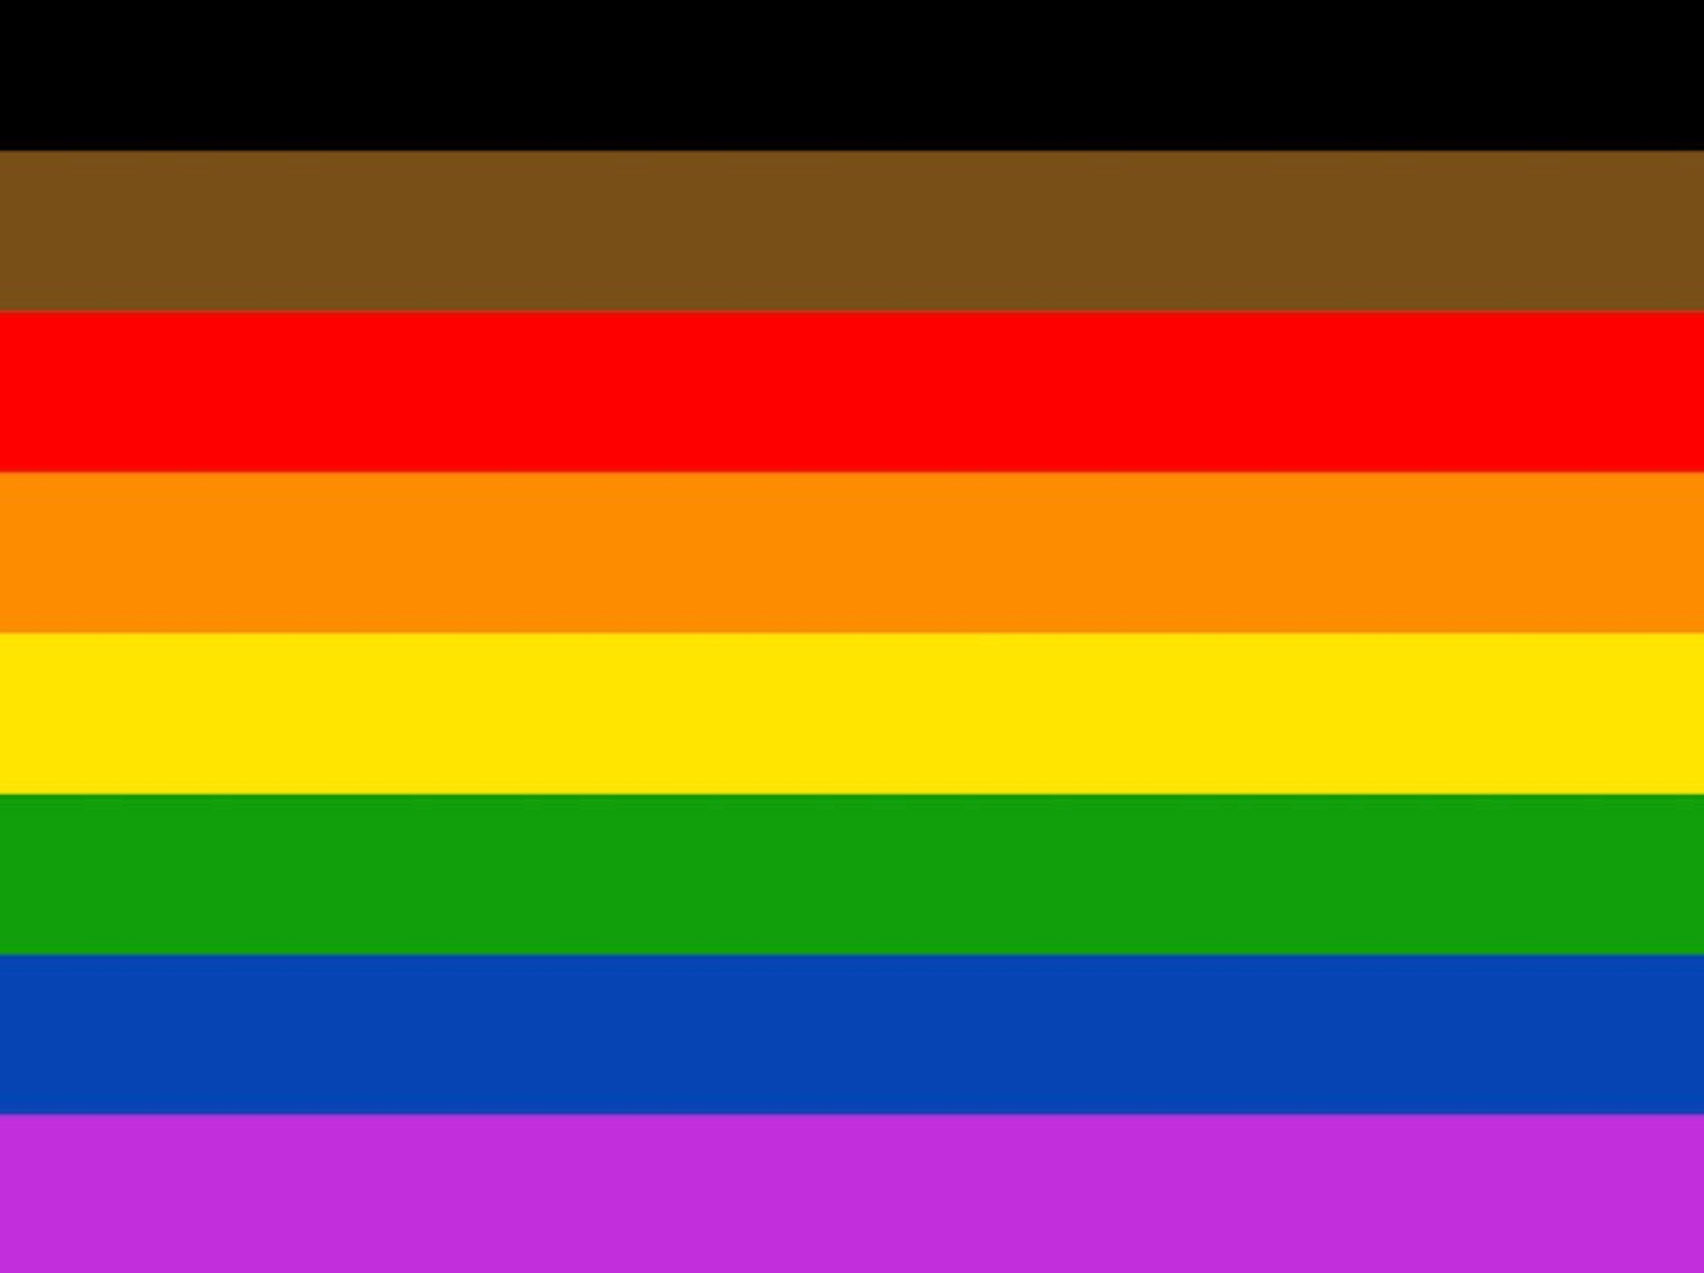 The original Rainbow Flag with last year's update by the city of Philadelphia, which added black and brown stripes to the top of the flag, to represent LGBT communites of colour.